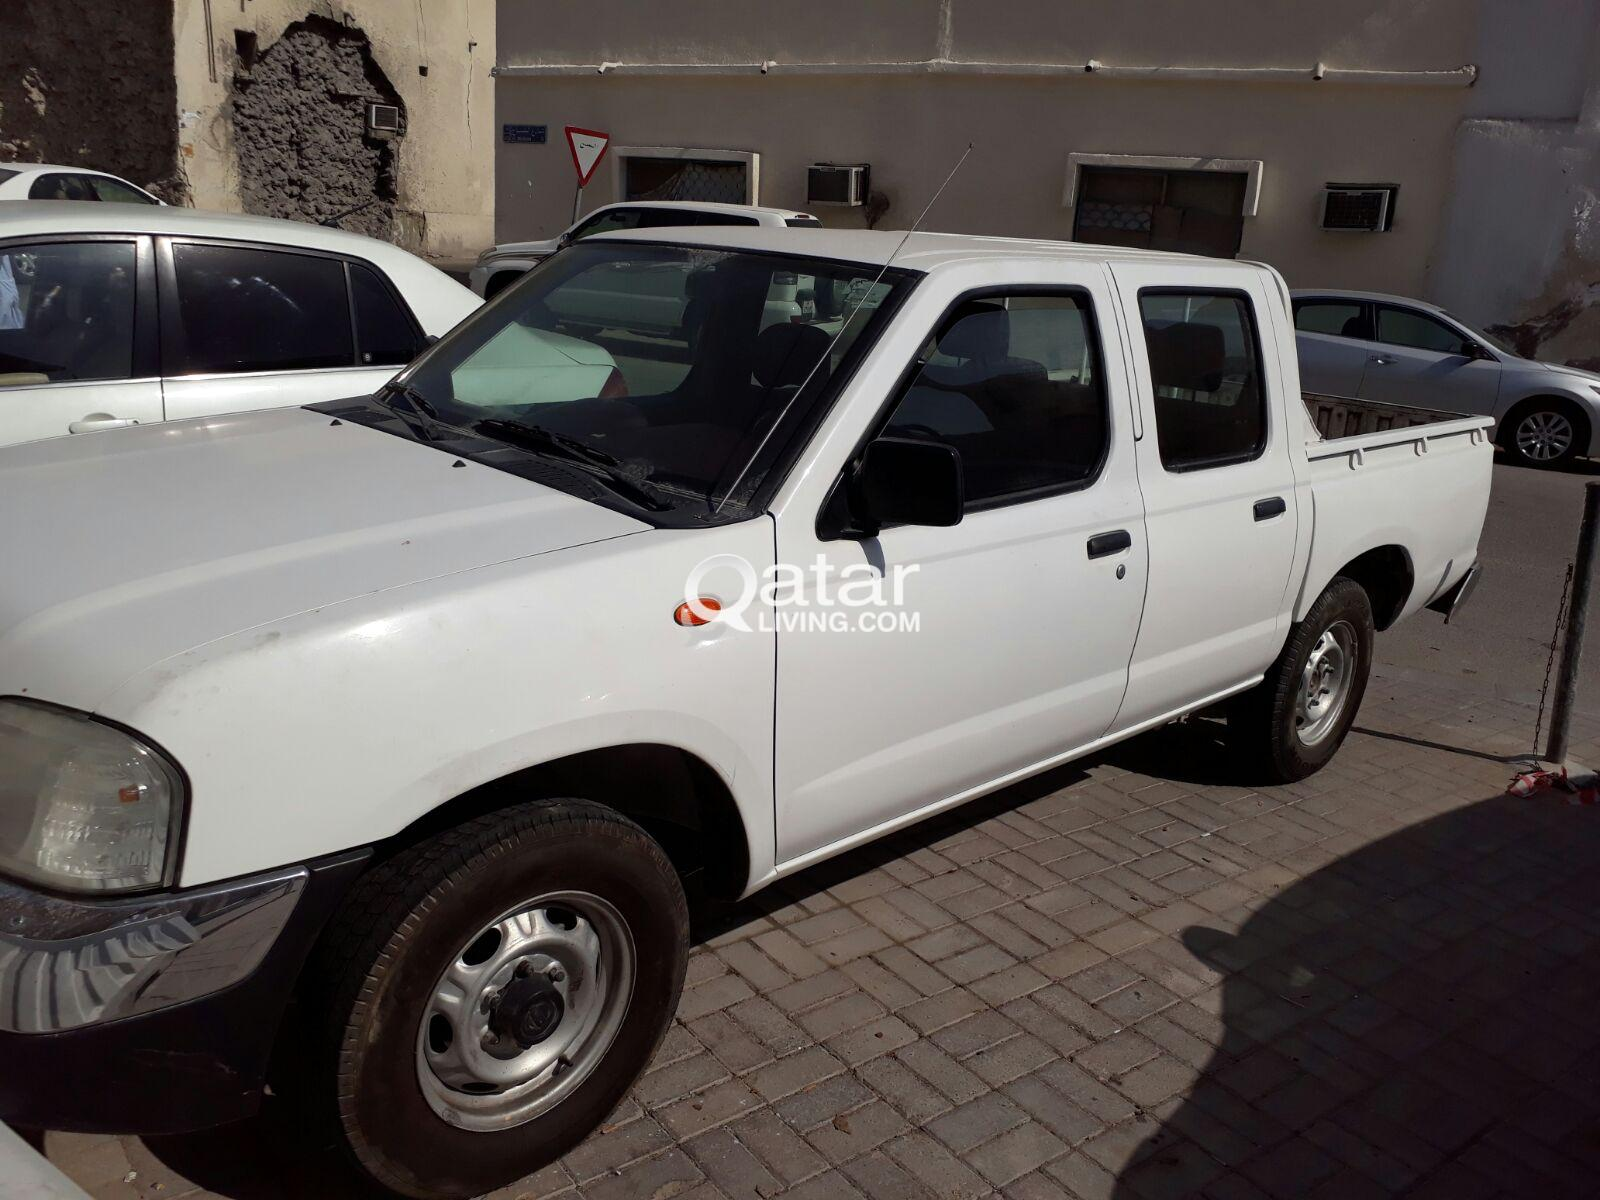 Nissan pickup phone number  5537 0486 | Qatar Living